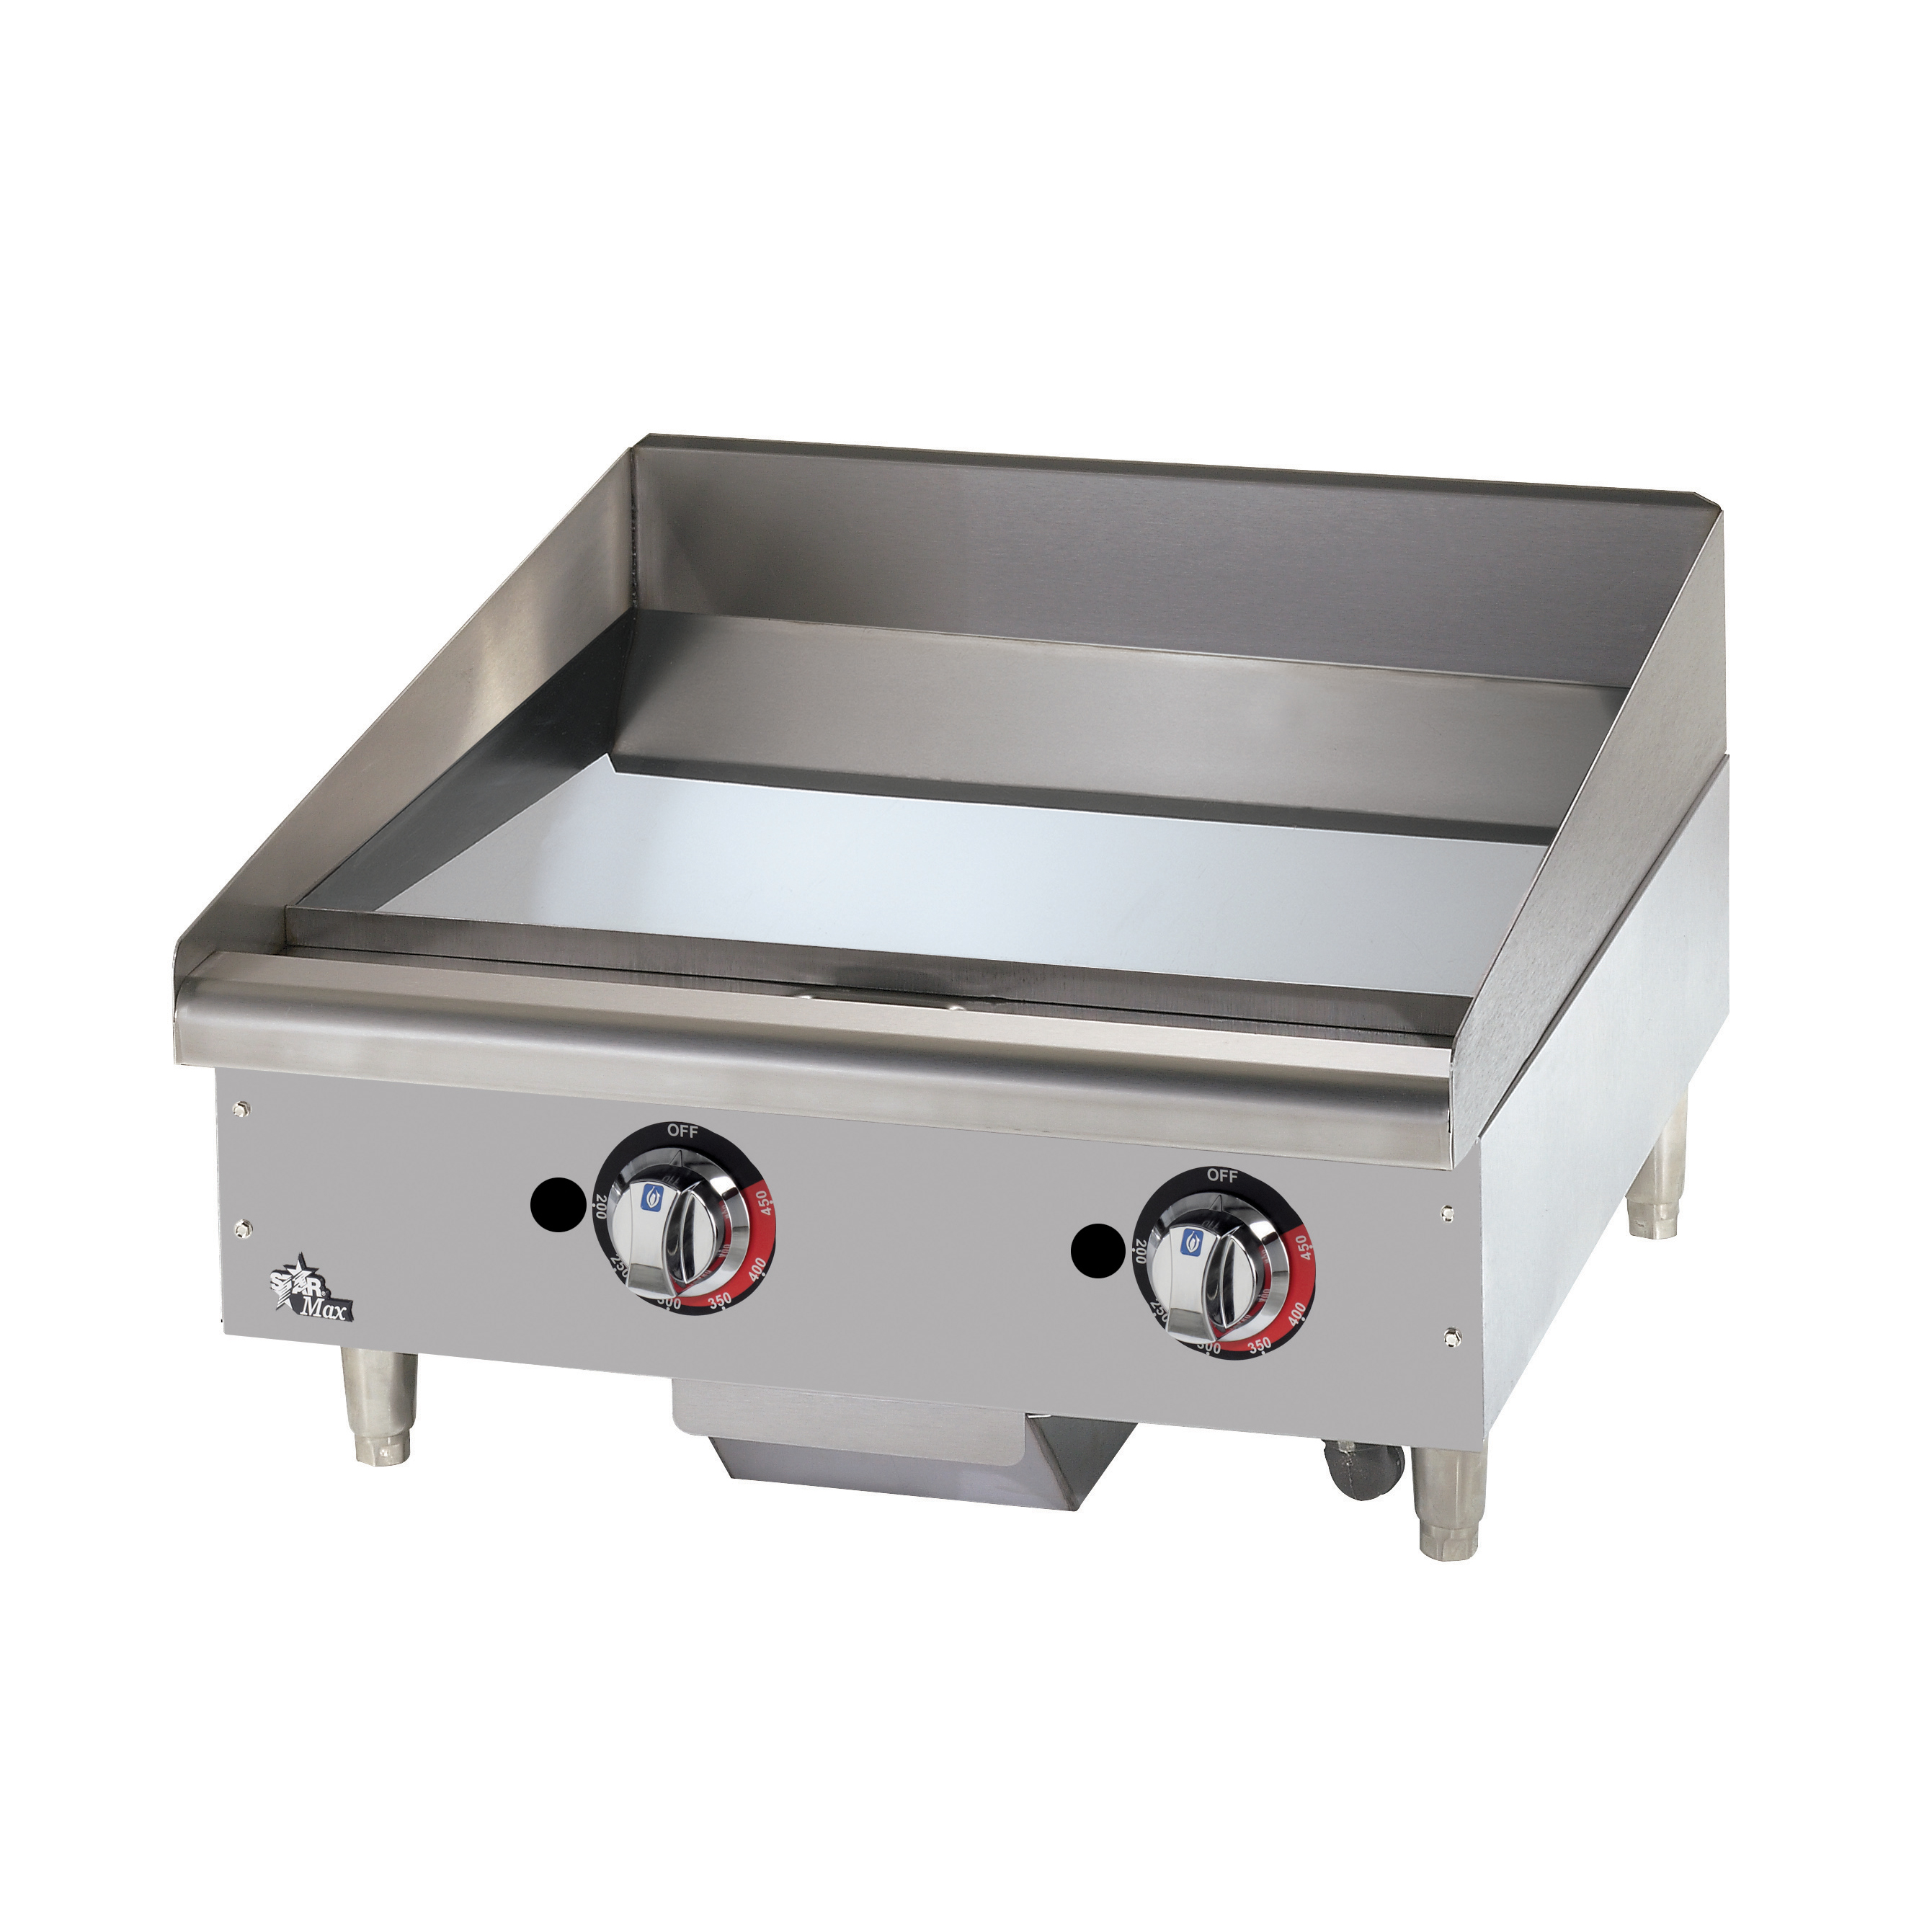 Star 624TCHSF griddle, gas, countertop